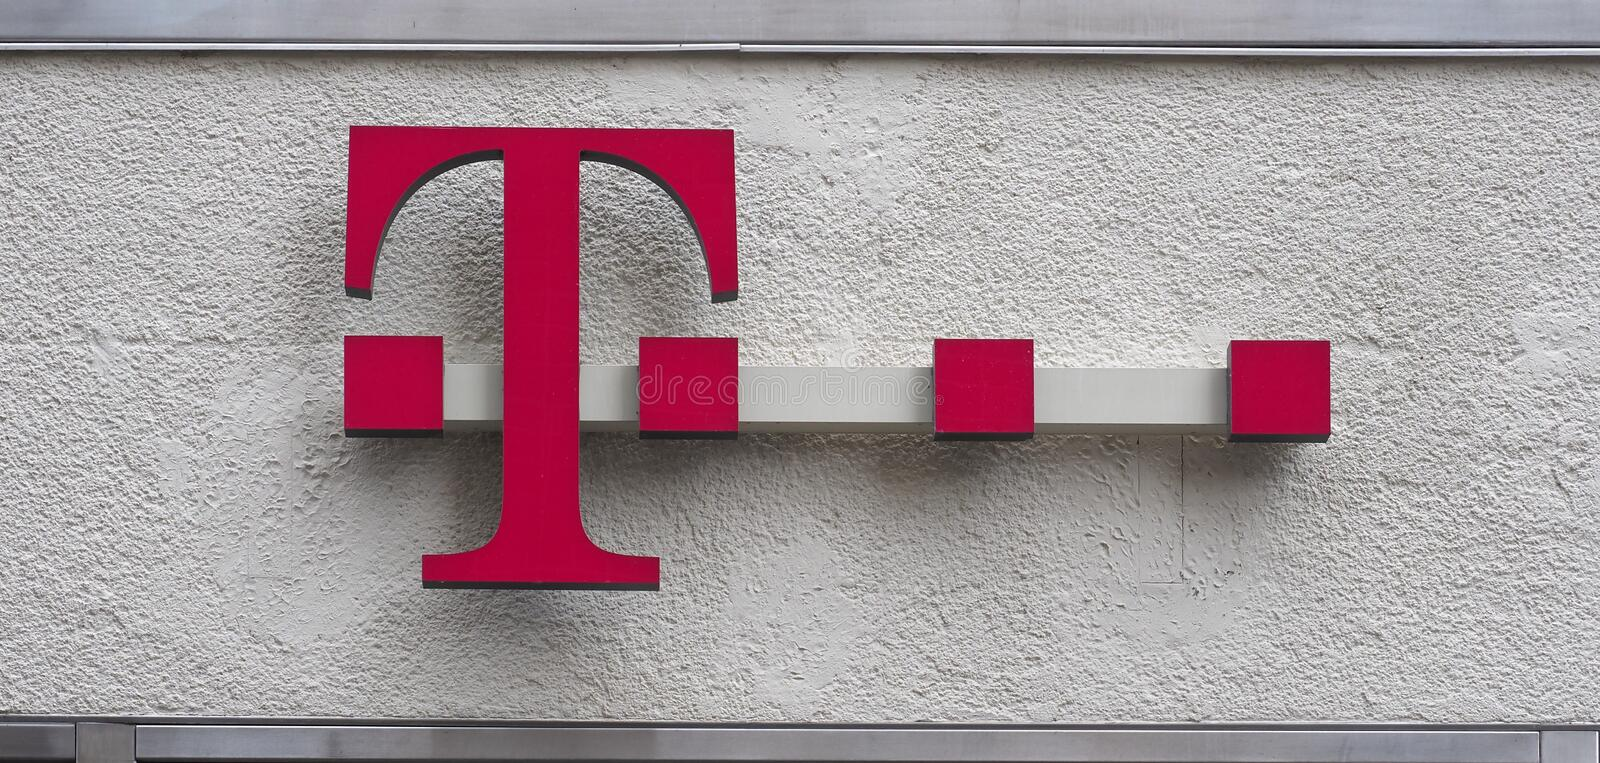 BONN - AUG 2019: Deutsche Telekom sign stock photo